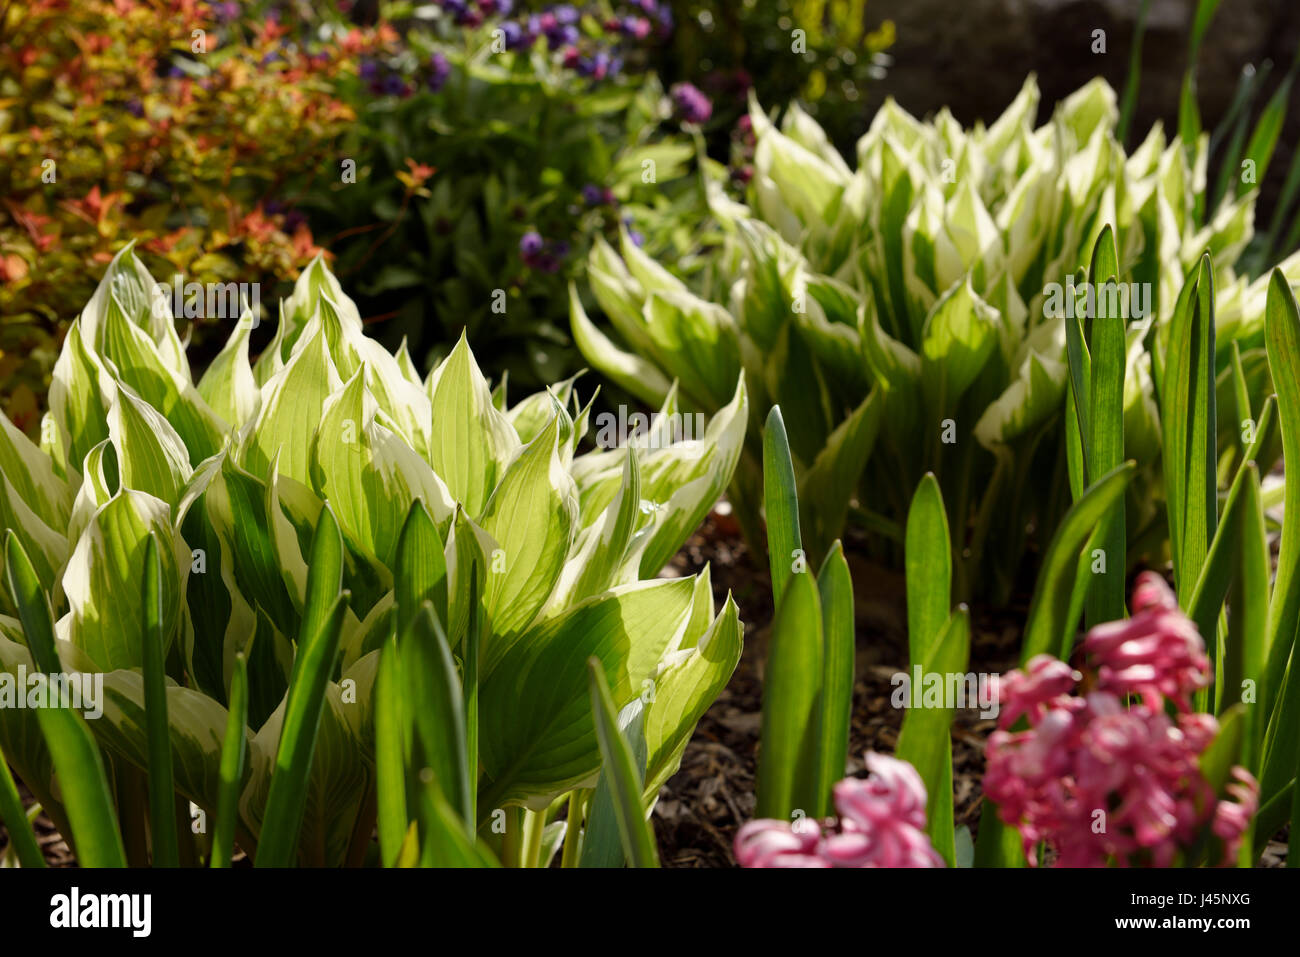 Green And White Hosta Leaves Emerging In A Spring Garden With Pink